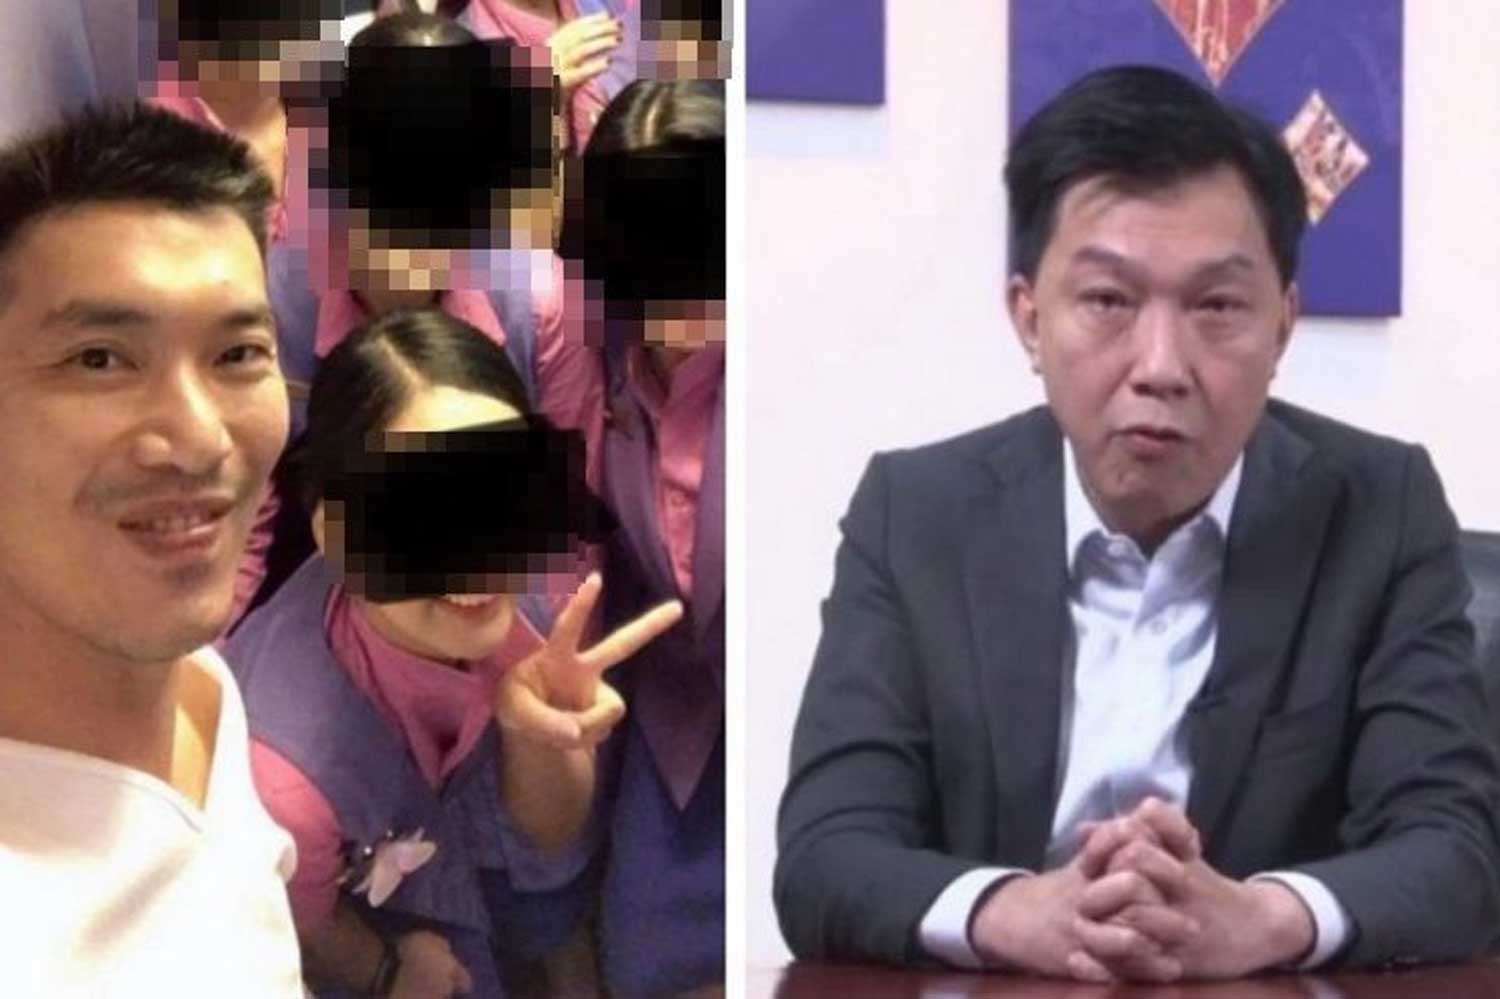 Thai Airways International president Sumeth Damrongchaitham, right, speaks in a video clip to employees in the wake of the posting of online selfies, left, showing flight attendants with Future Forward Party leader Thanathorn Juangroongruangkit.